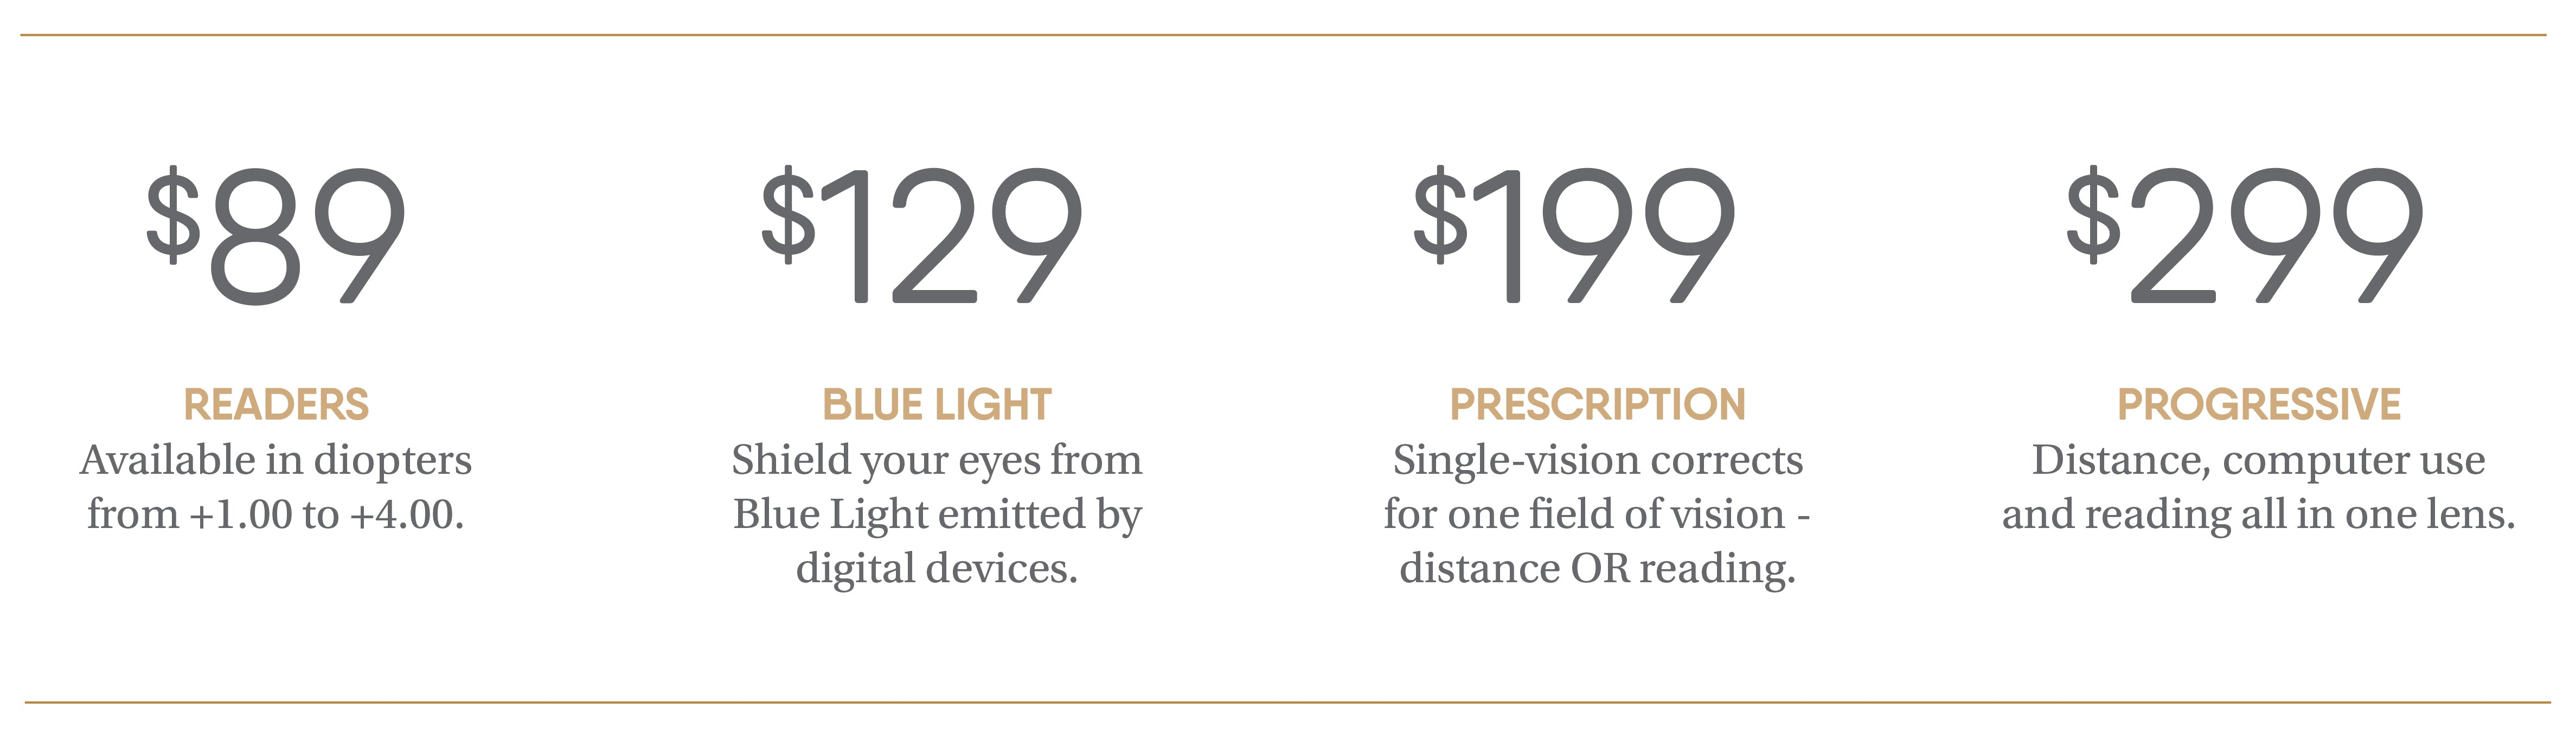 eyebobs Pricing - Starting at $89